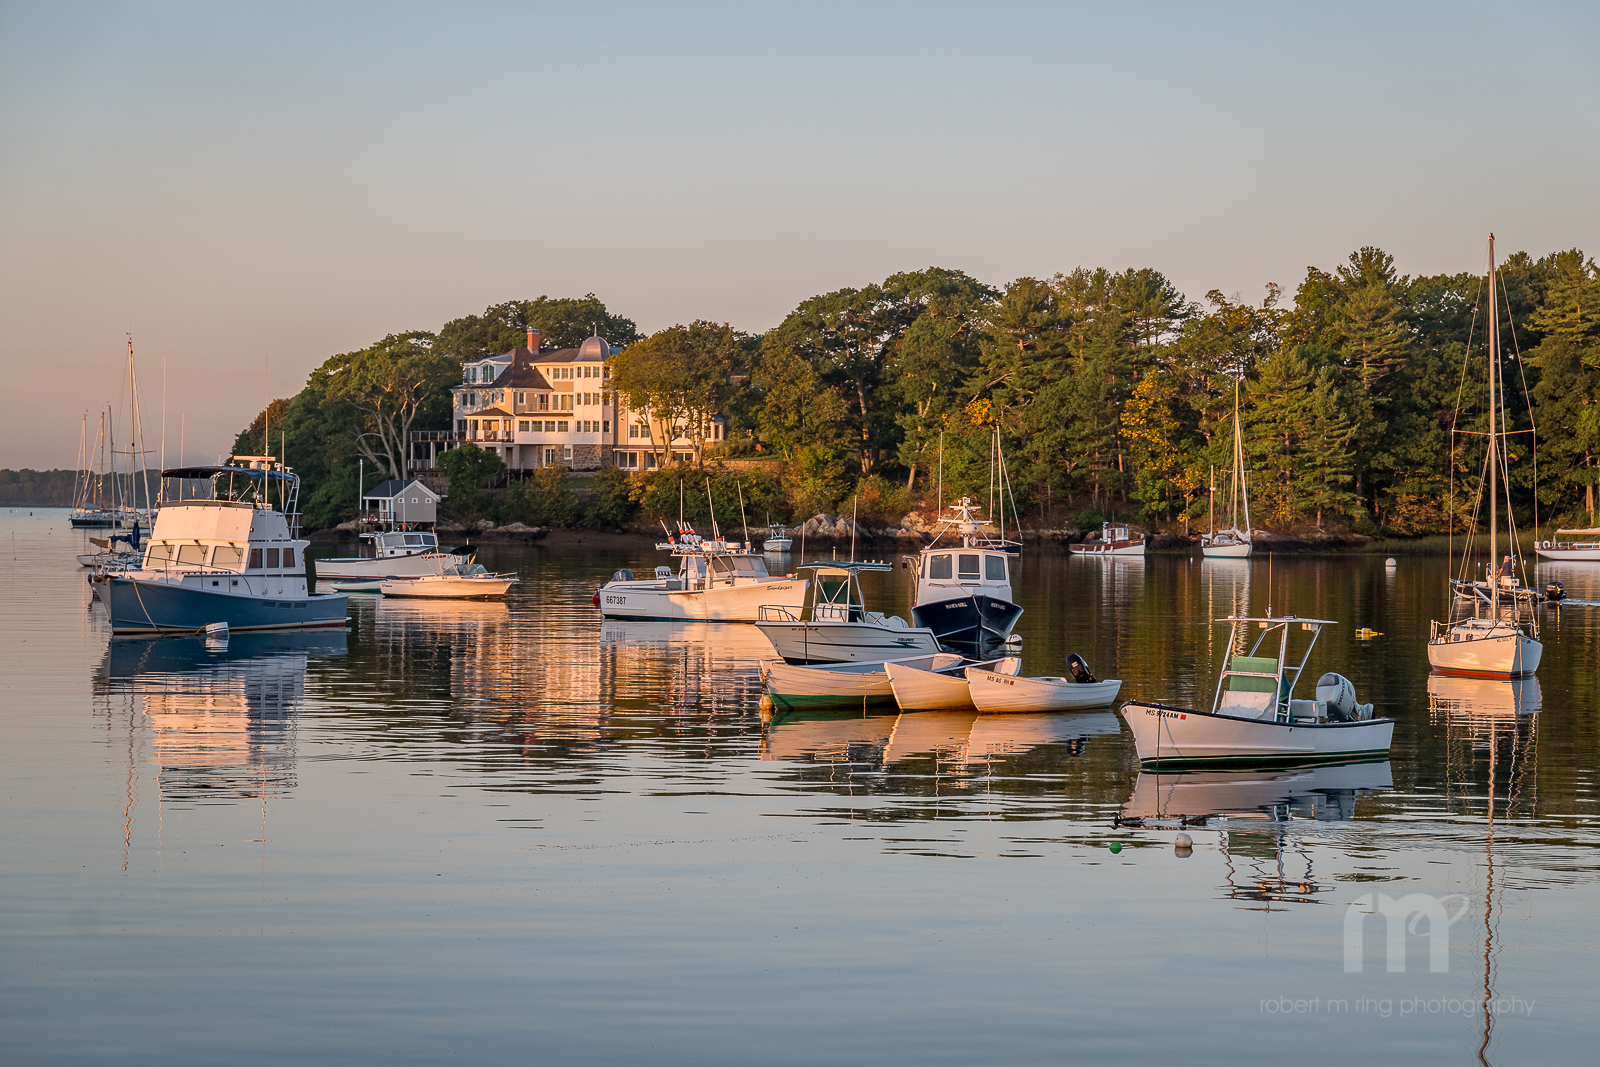 Sunrise, Scenic, Harbor, Landscape, New England, Lobster Boats, Boats, photo